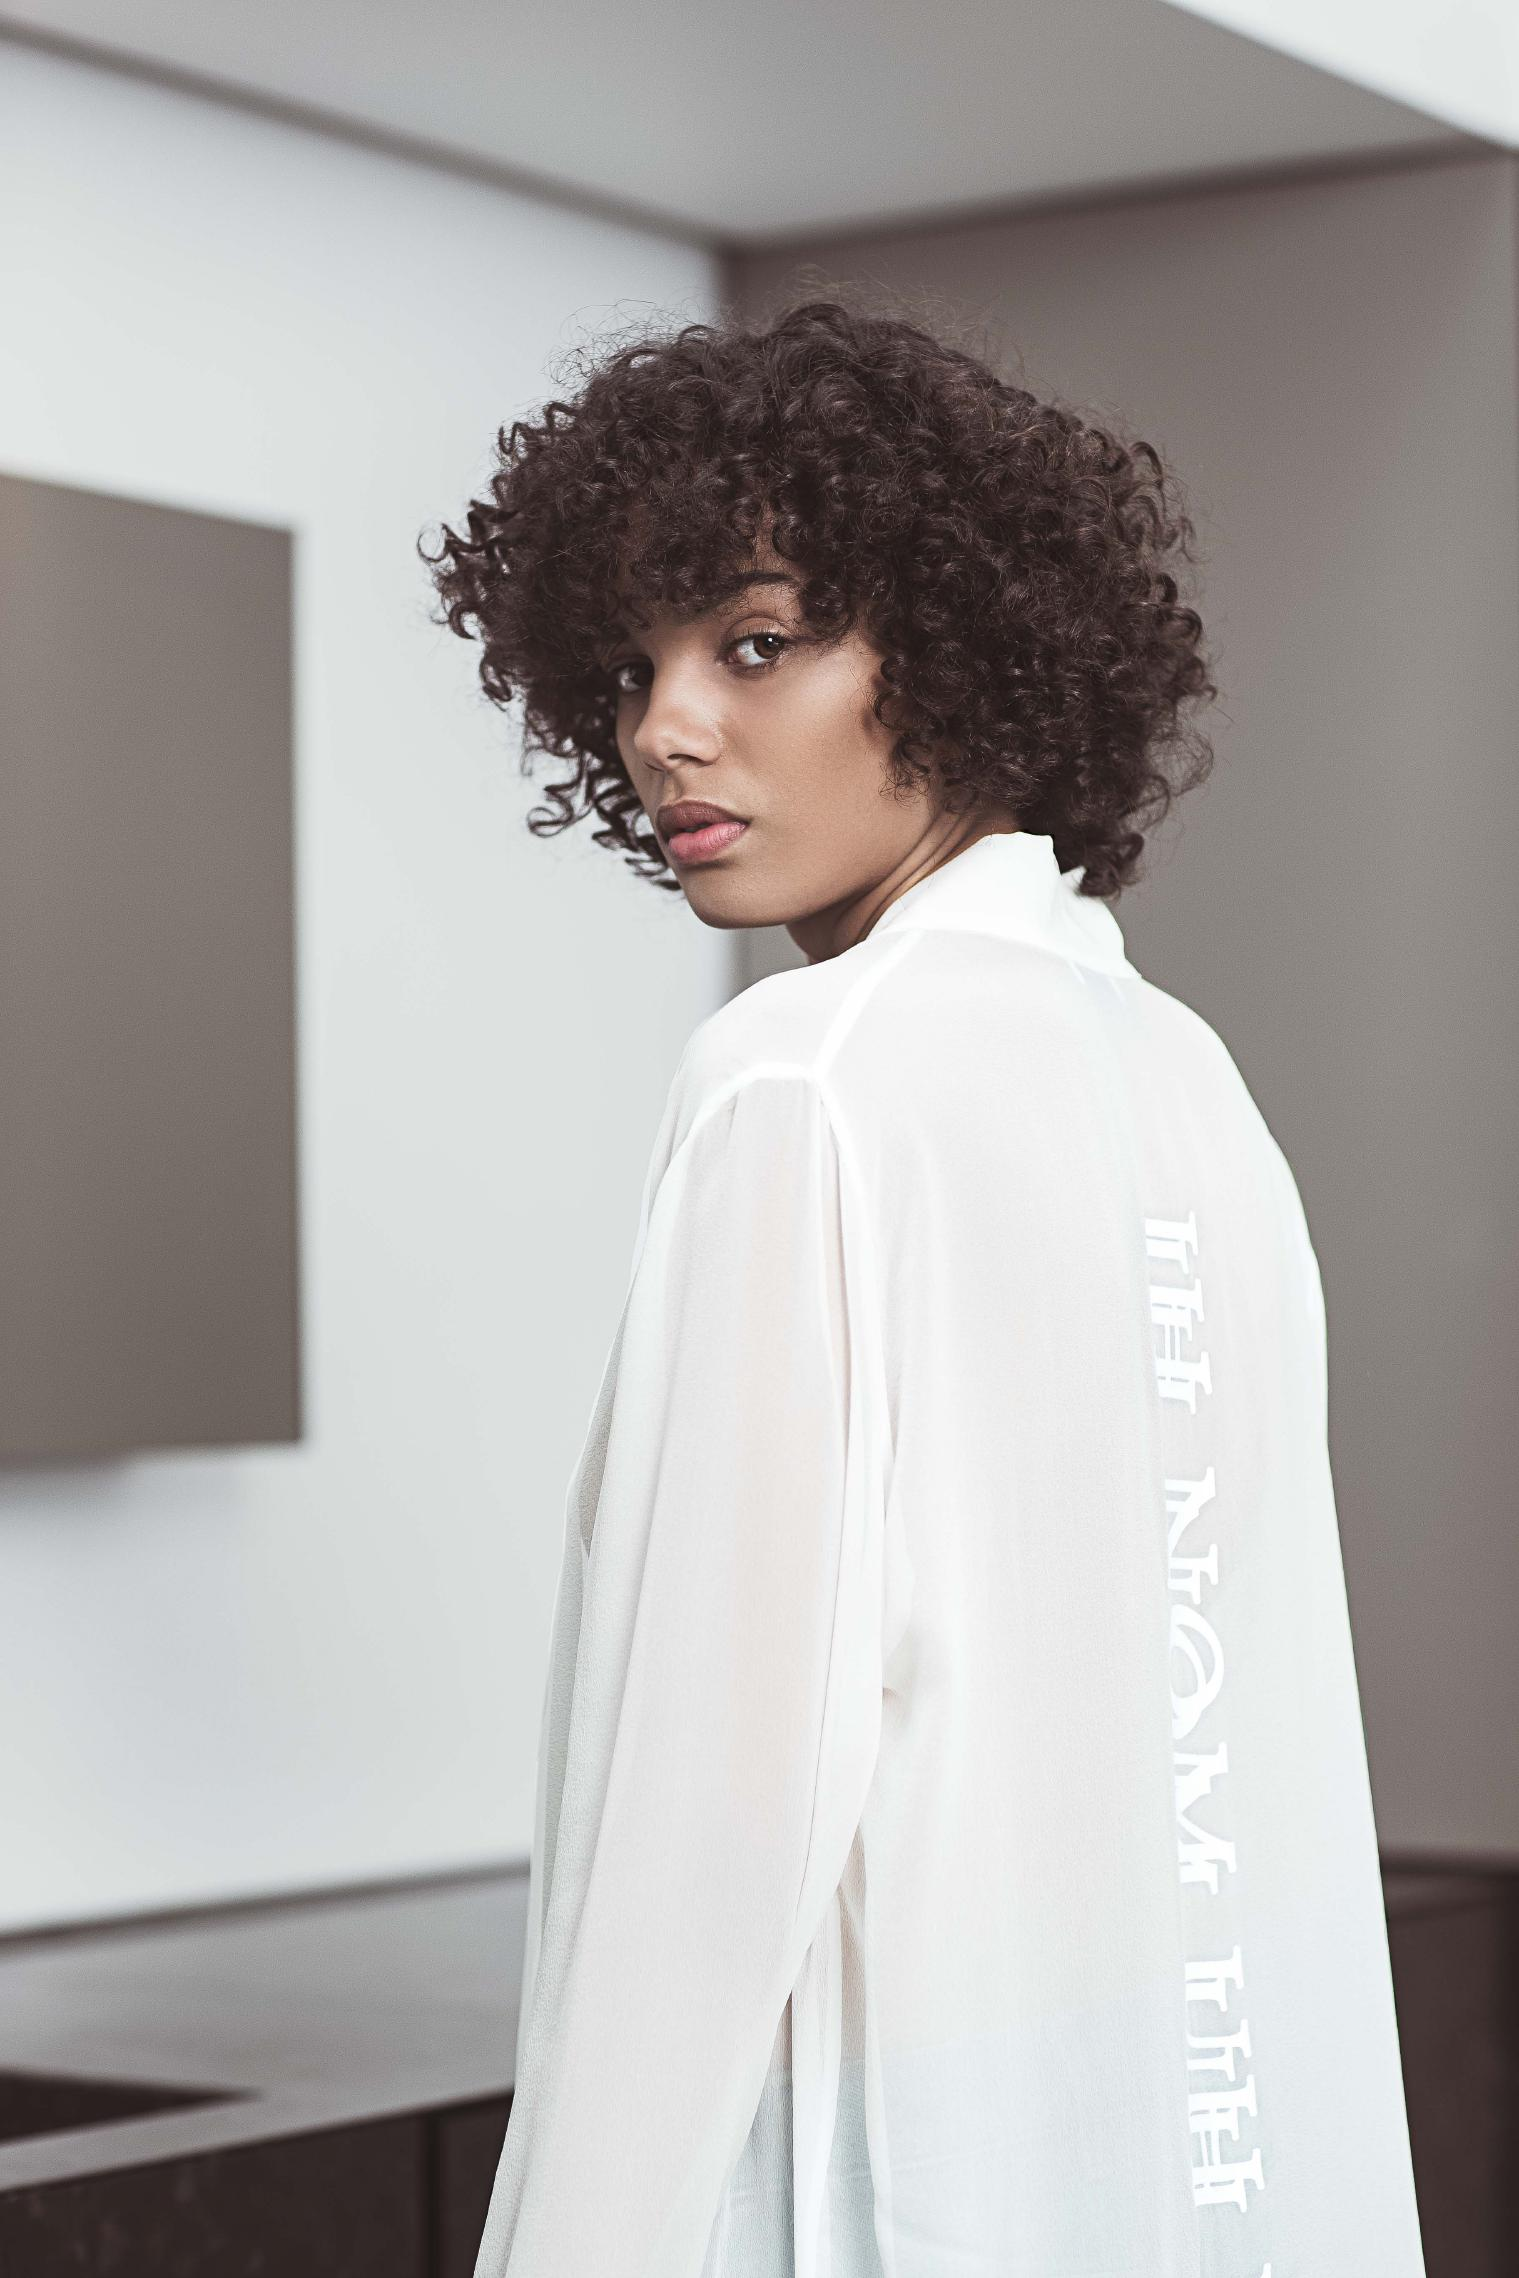 SS19 WOMAN LOOK BOOK-2_Page_10_Image_0001.jpg